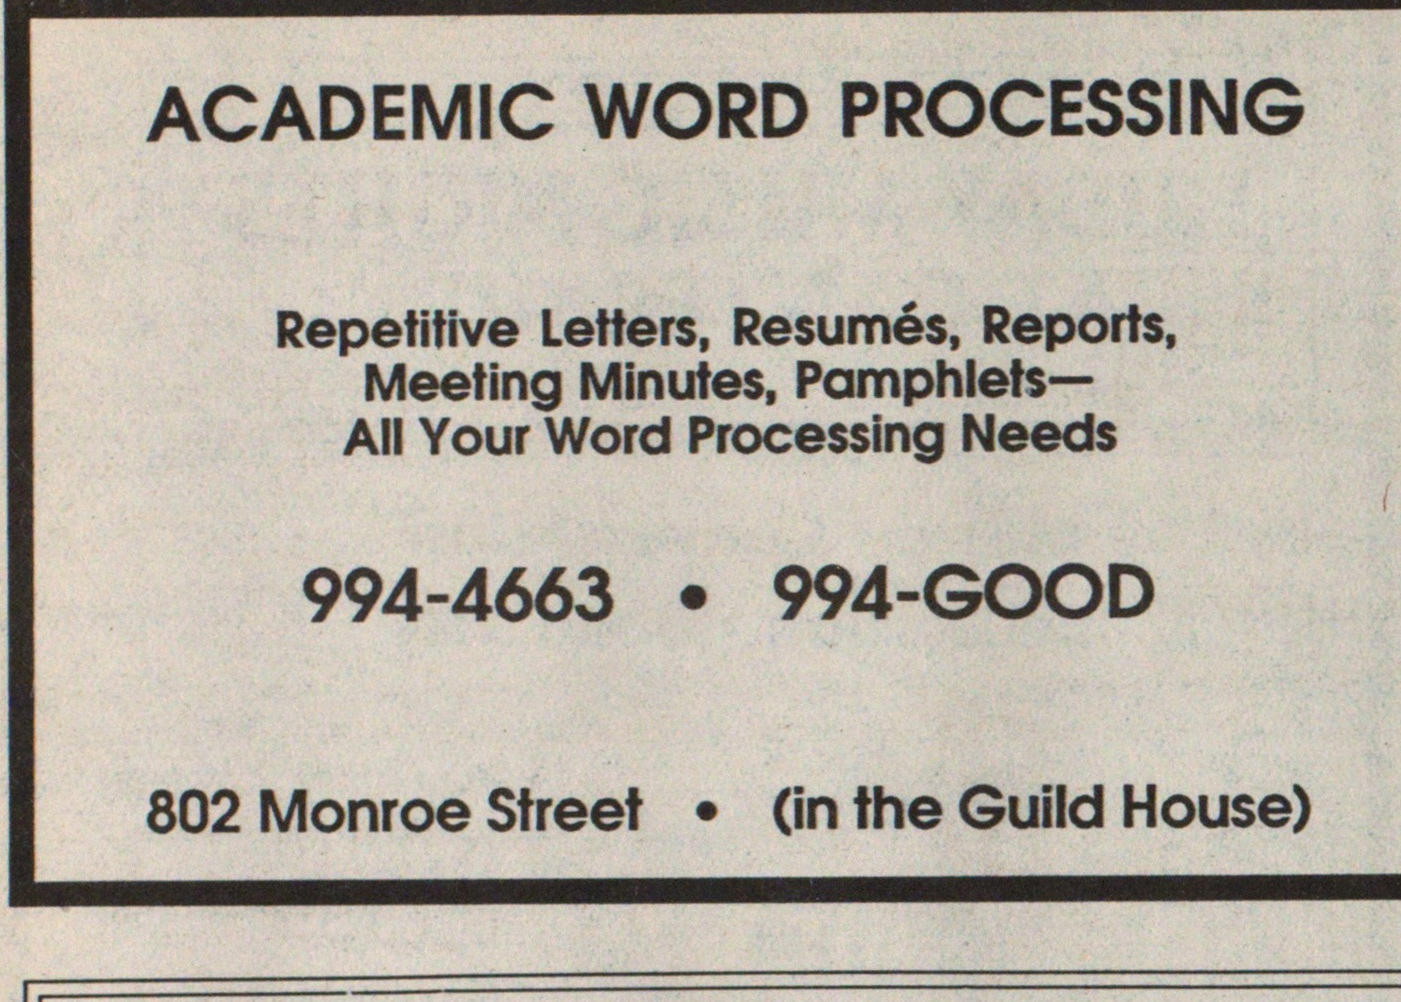 Academic Word Processing image